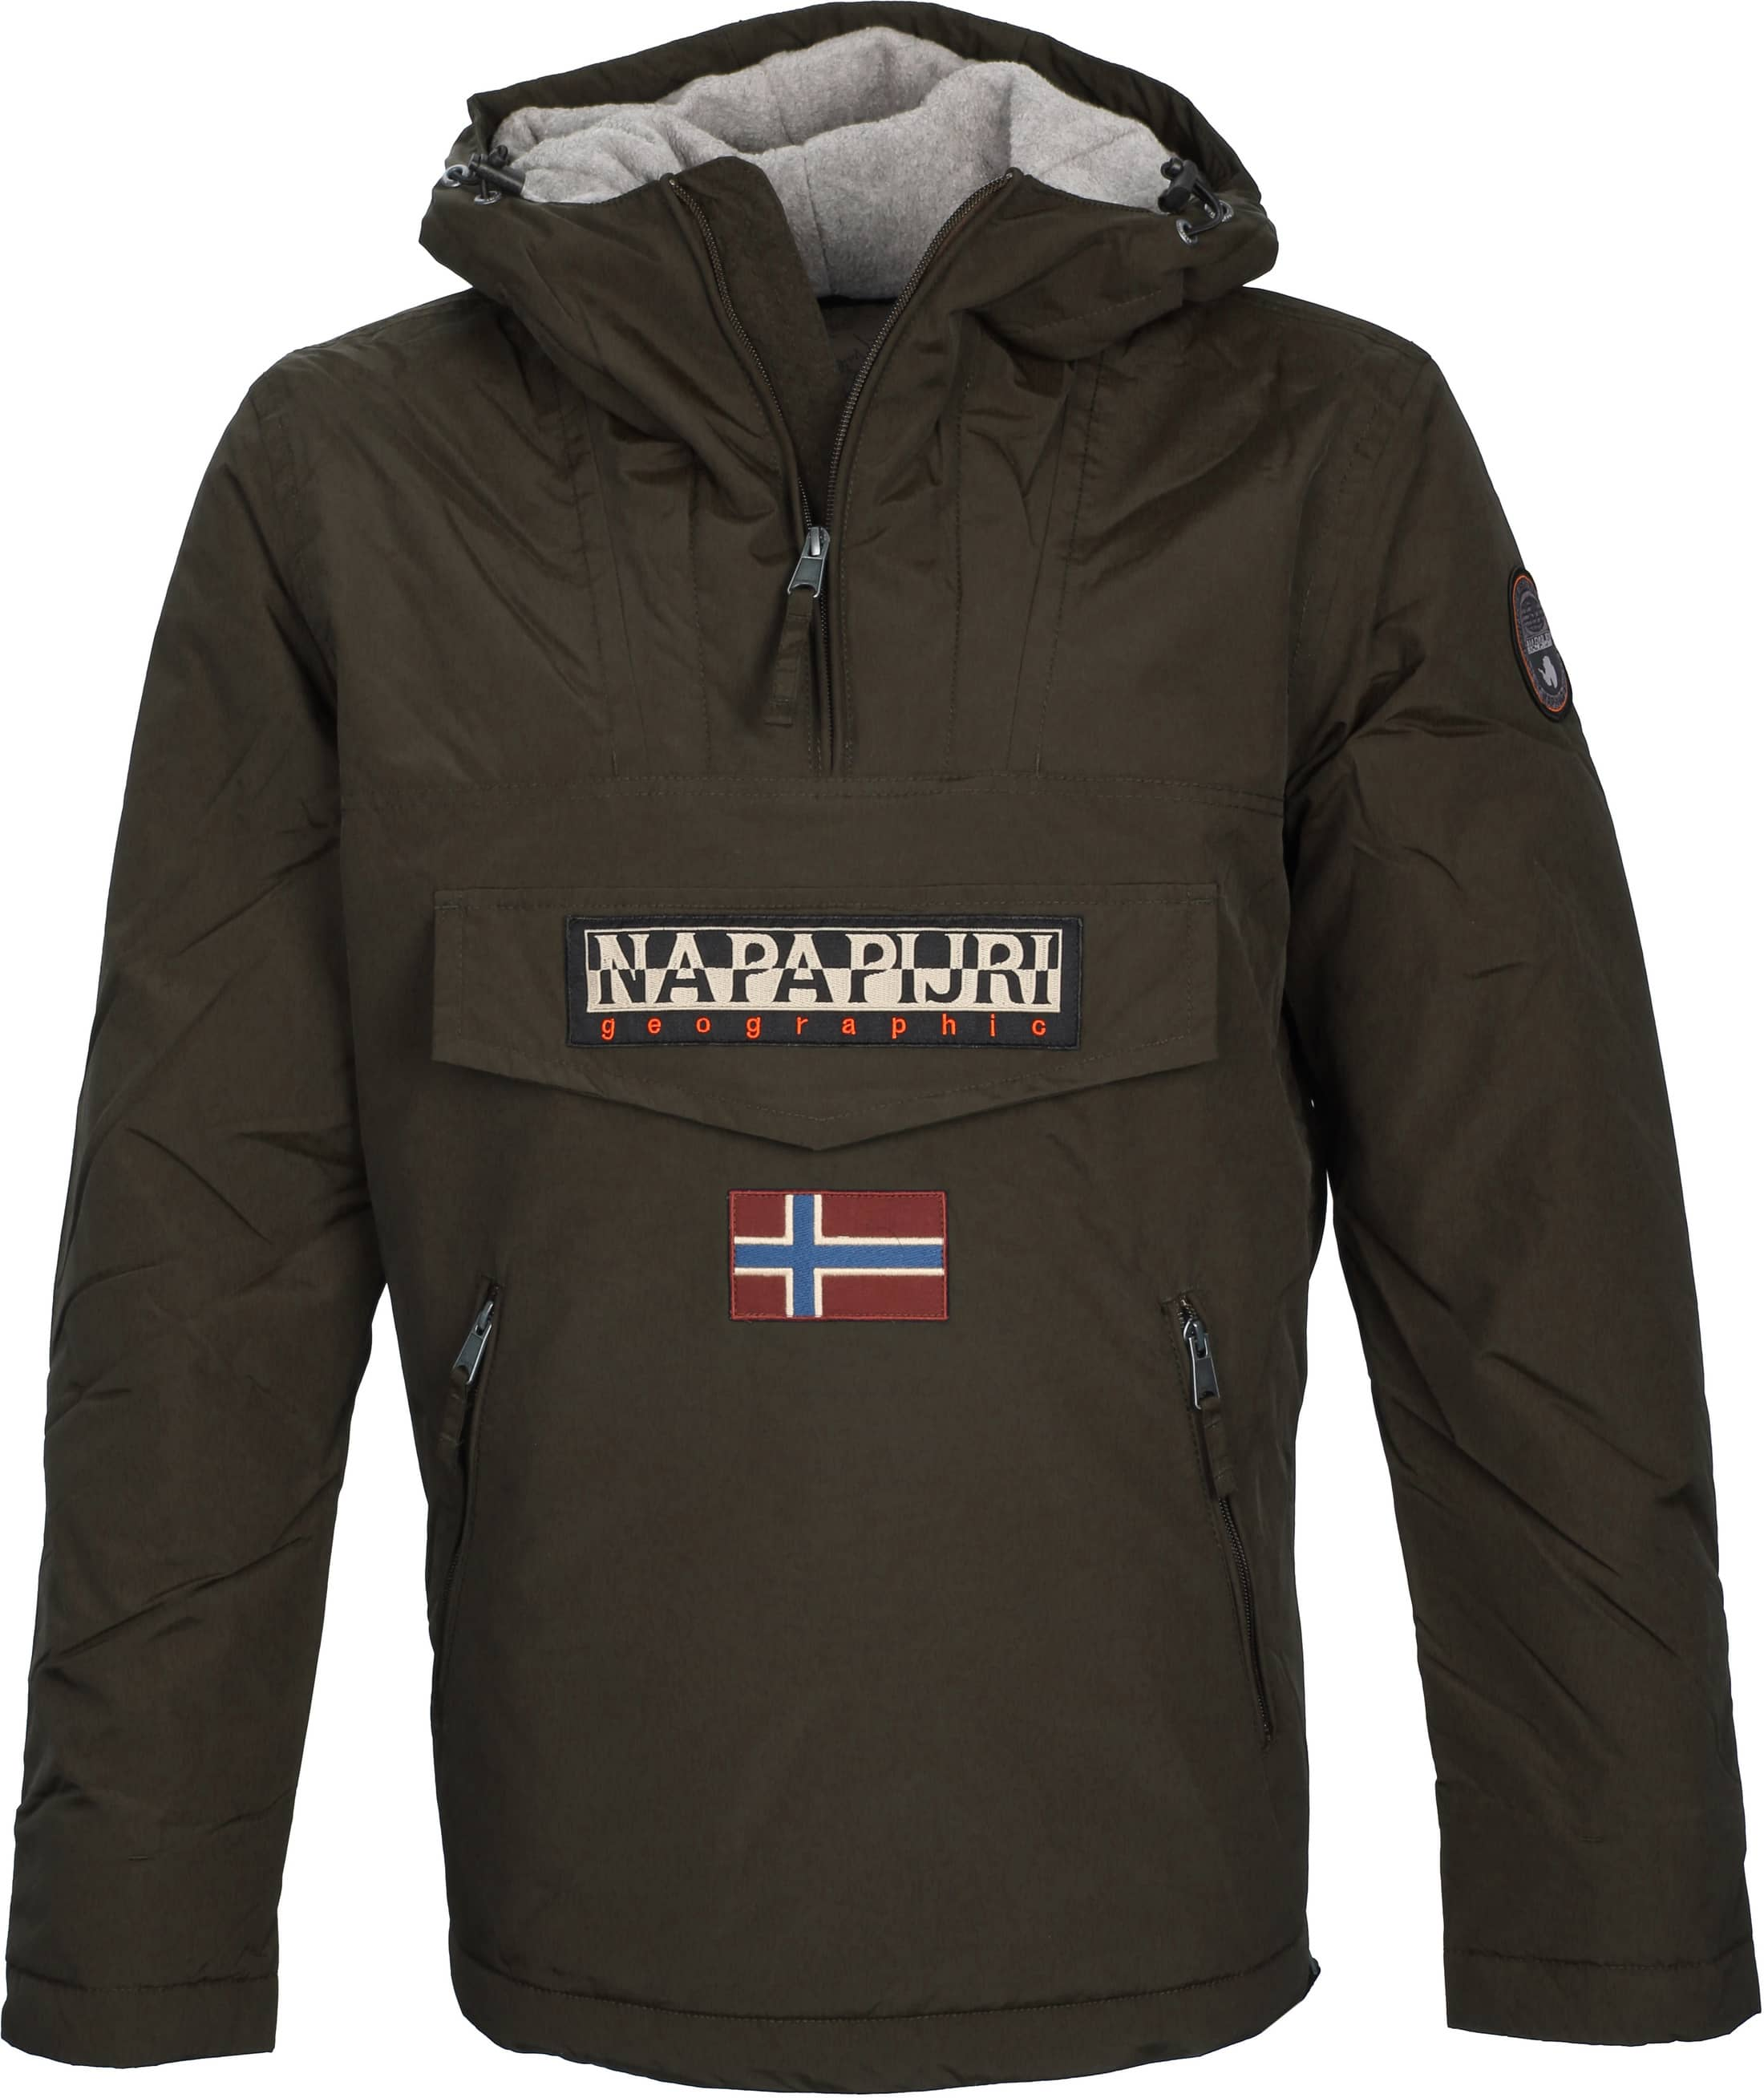 Napapijri Anorak Rainforest Pocket Darkgreen foto 0